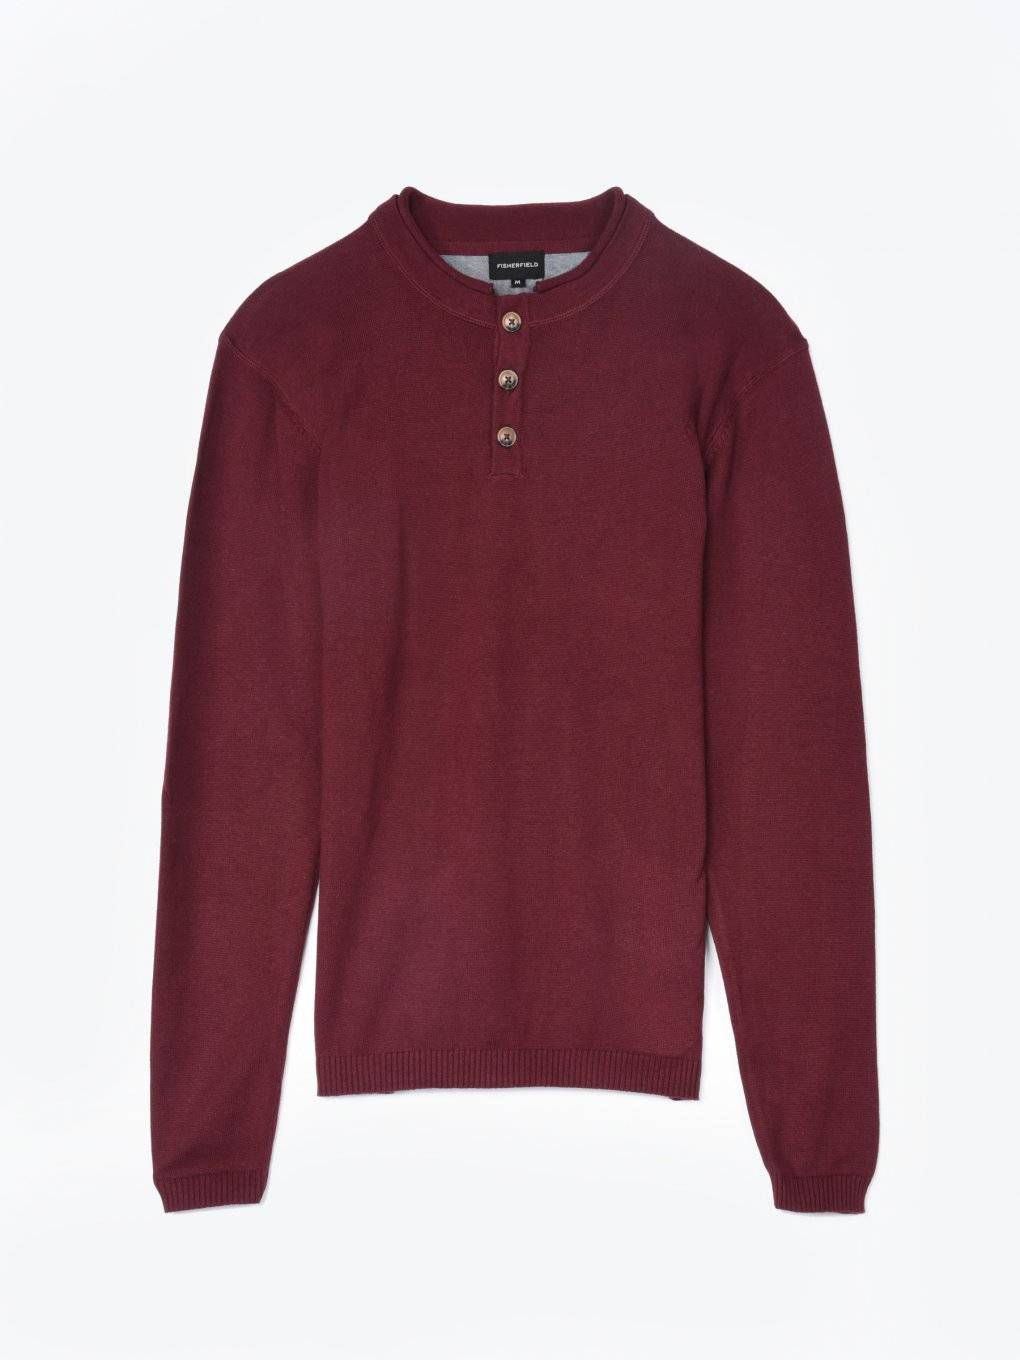 Jumper with buttons